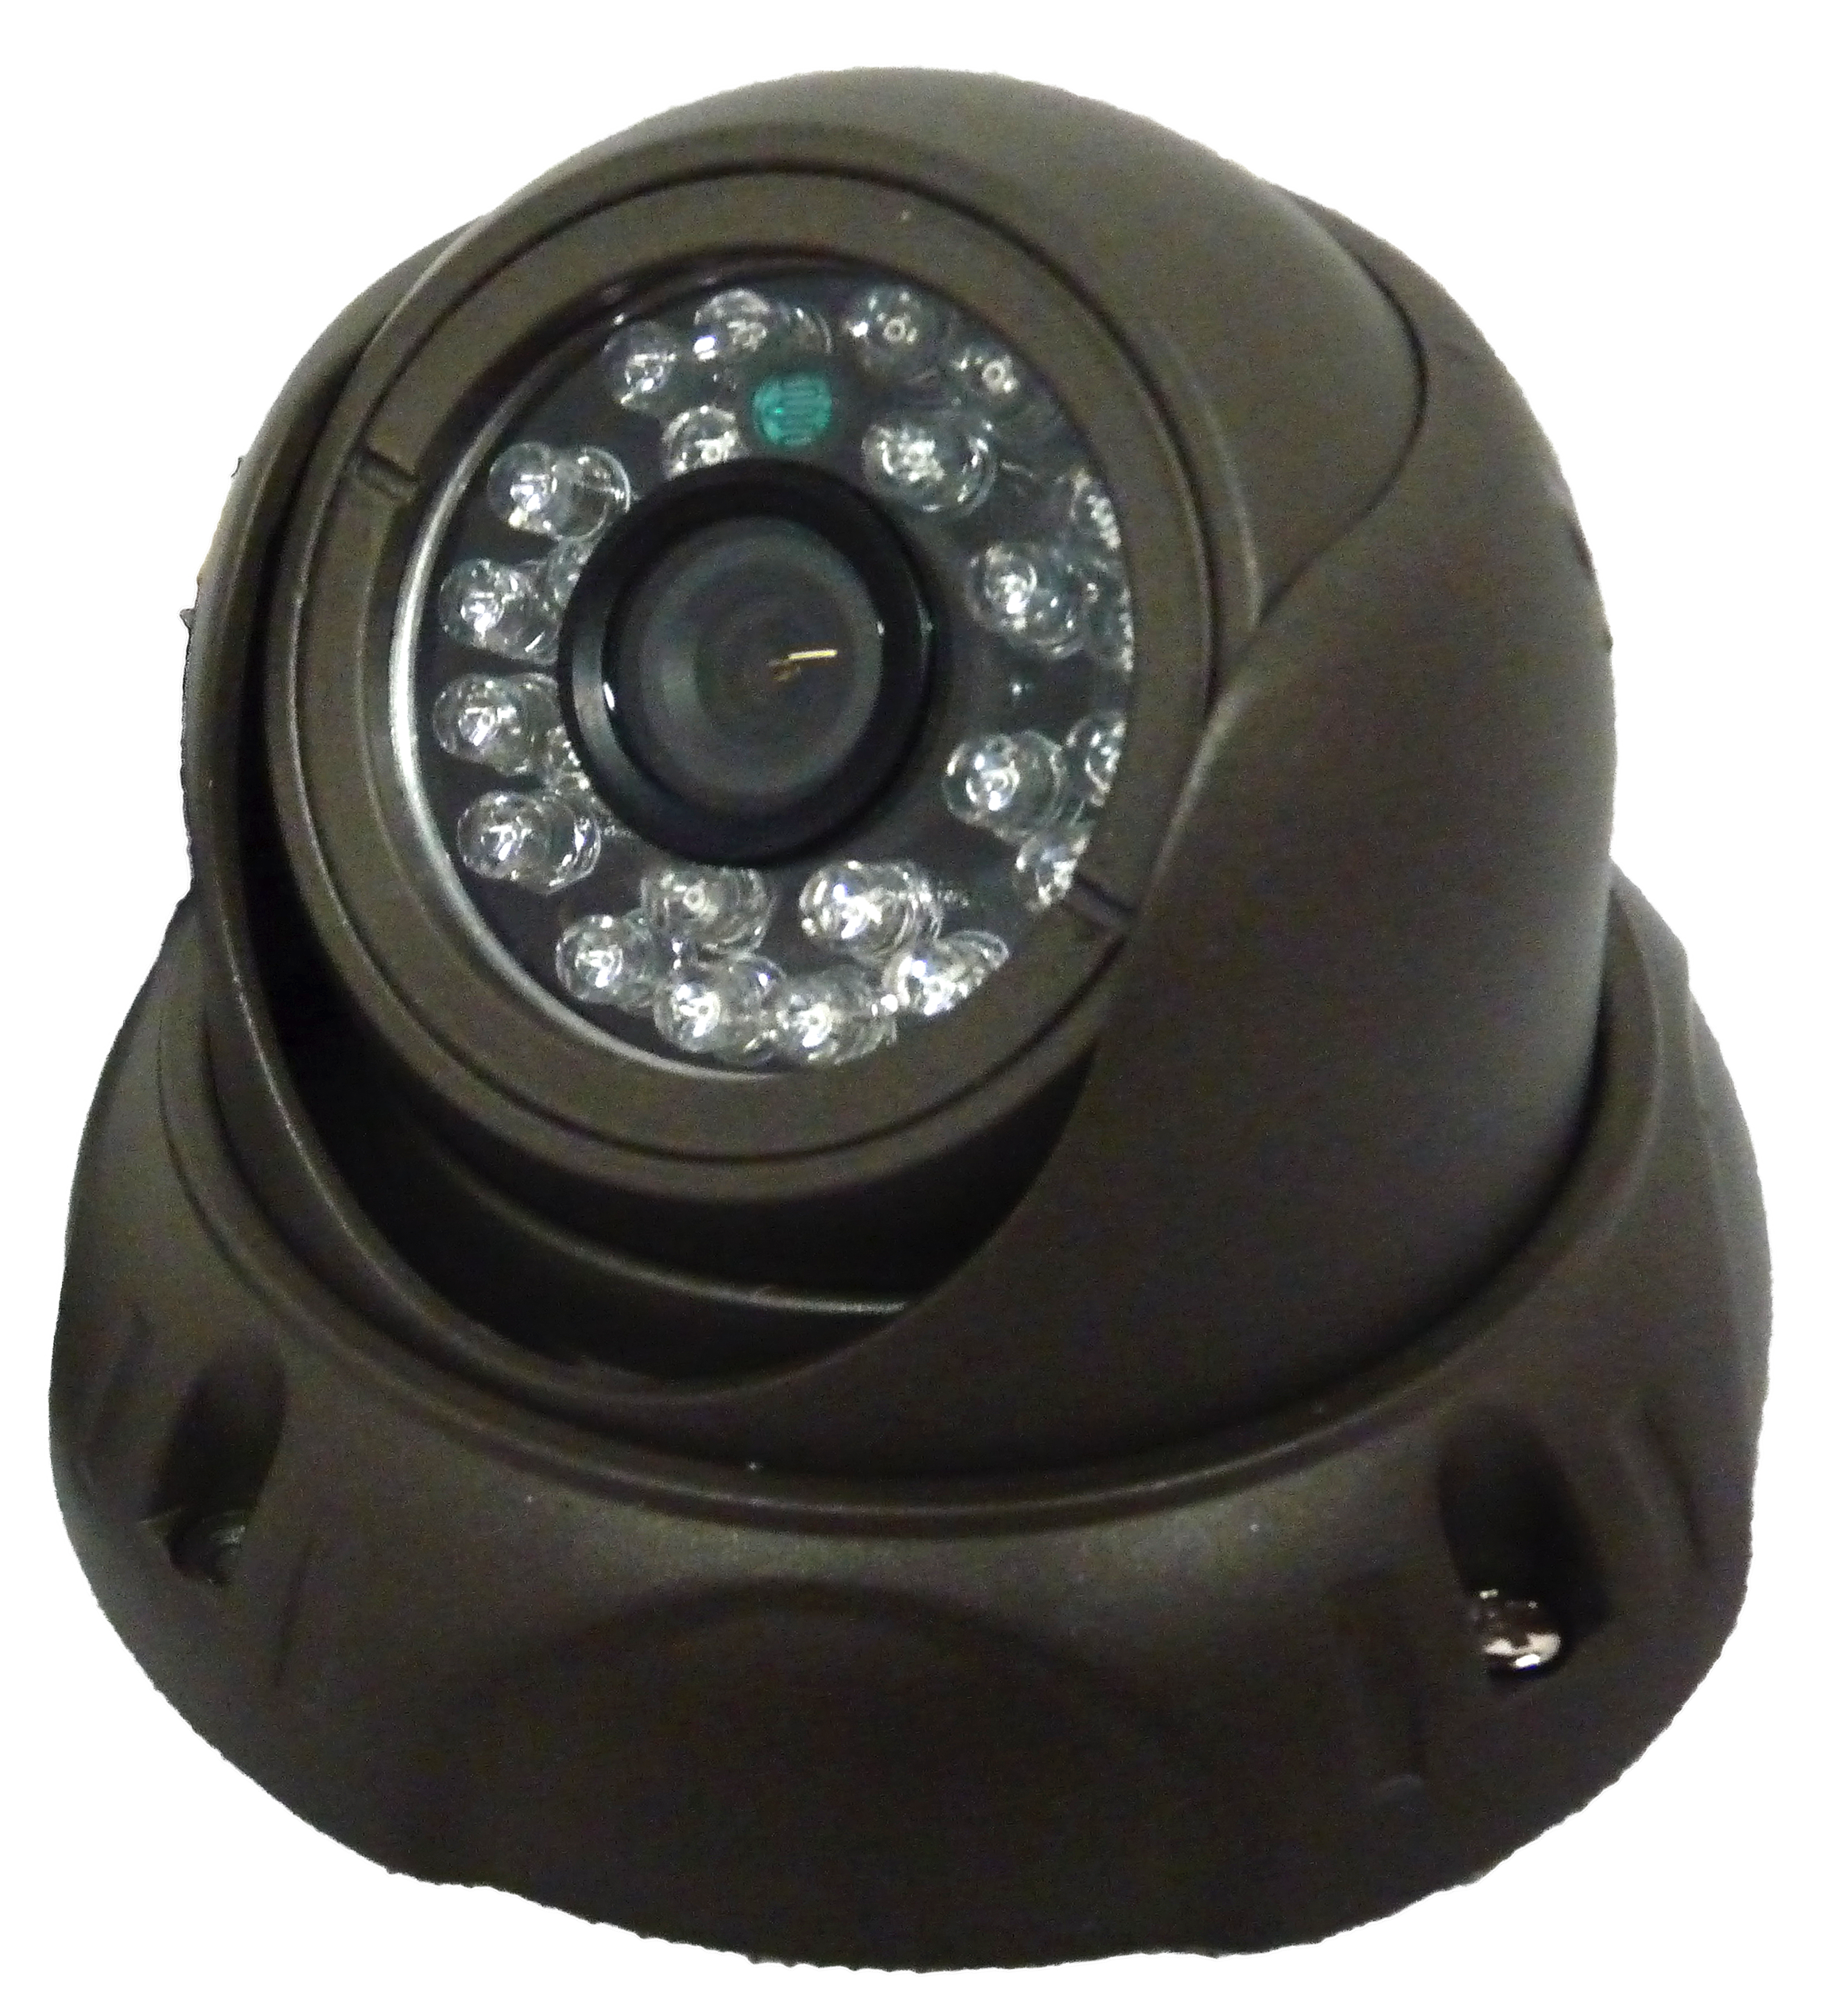 Image for DBS 785G - 700TVL CCTV Dome Security Camera - 1/3'' Sony Super HAD CCD II